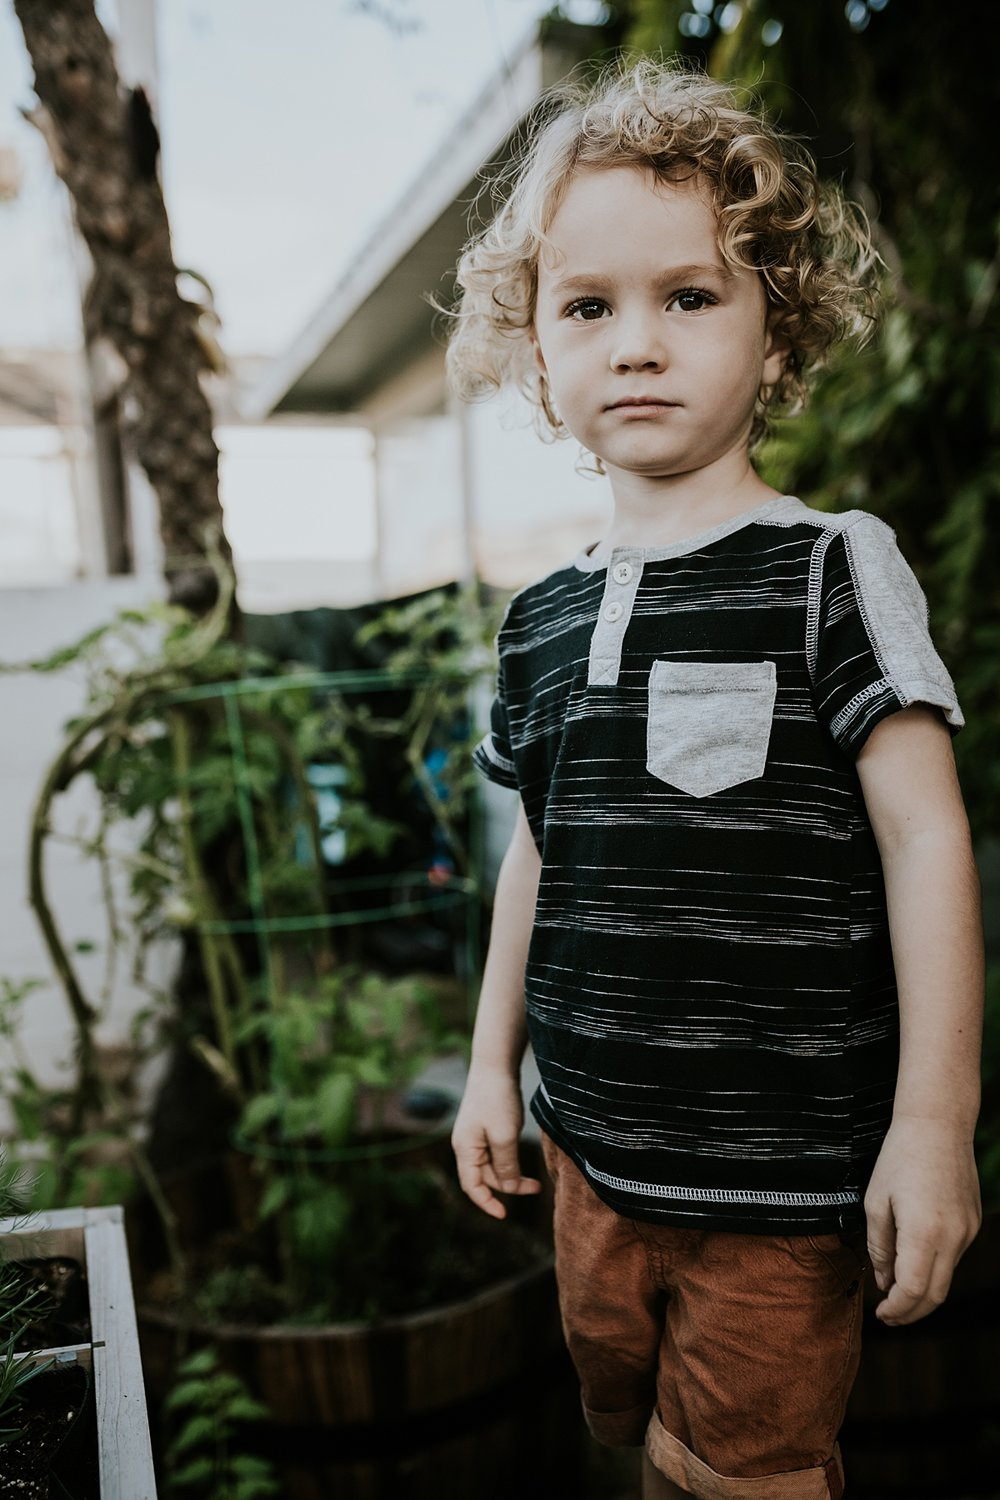 Orange County family photographer. Portrait of young boy among the plants in his front yard during documentary photo session with Krystil McDowall Photography